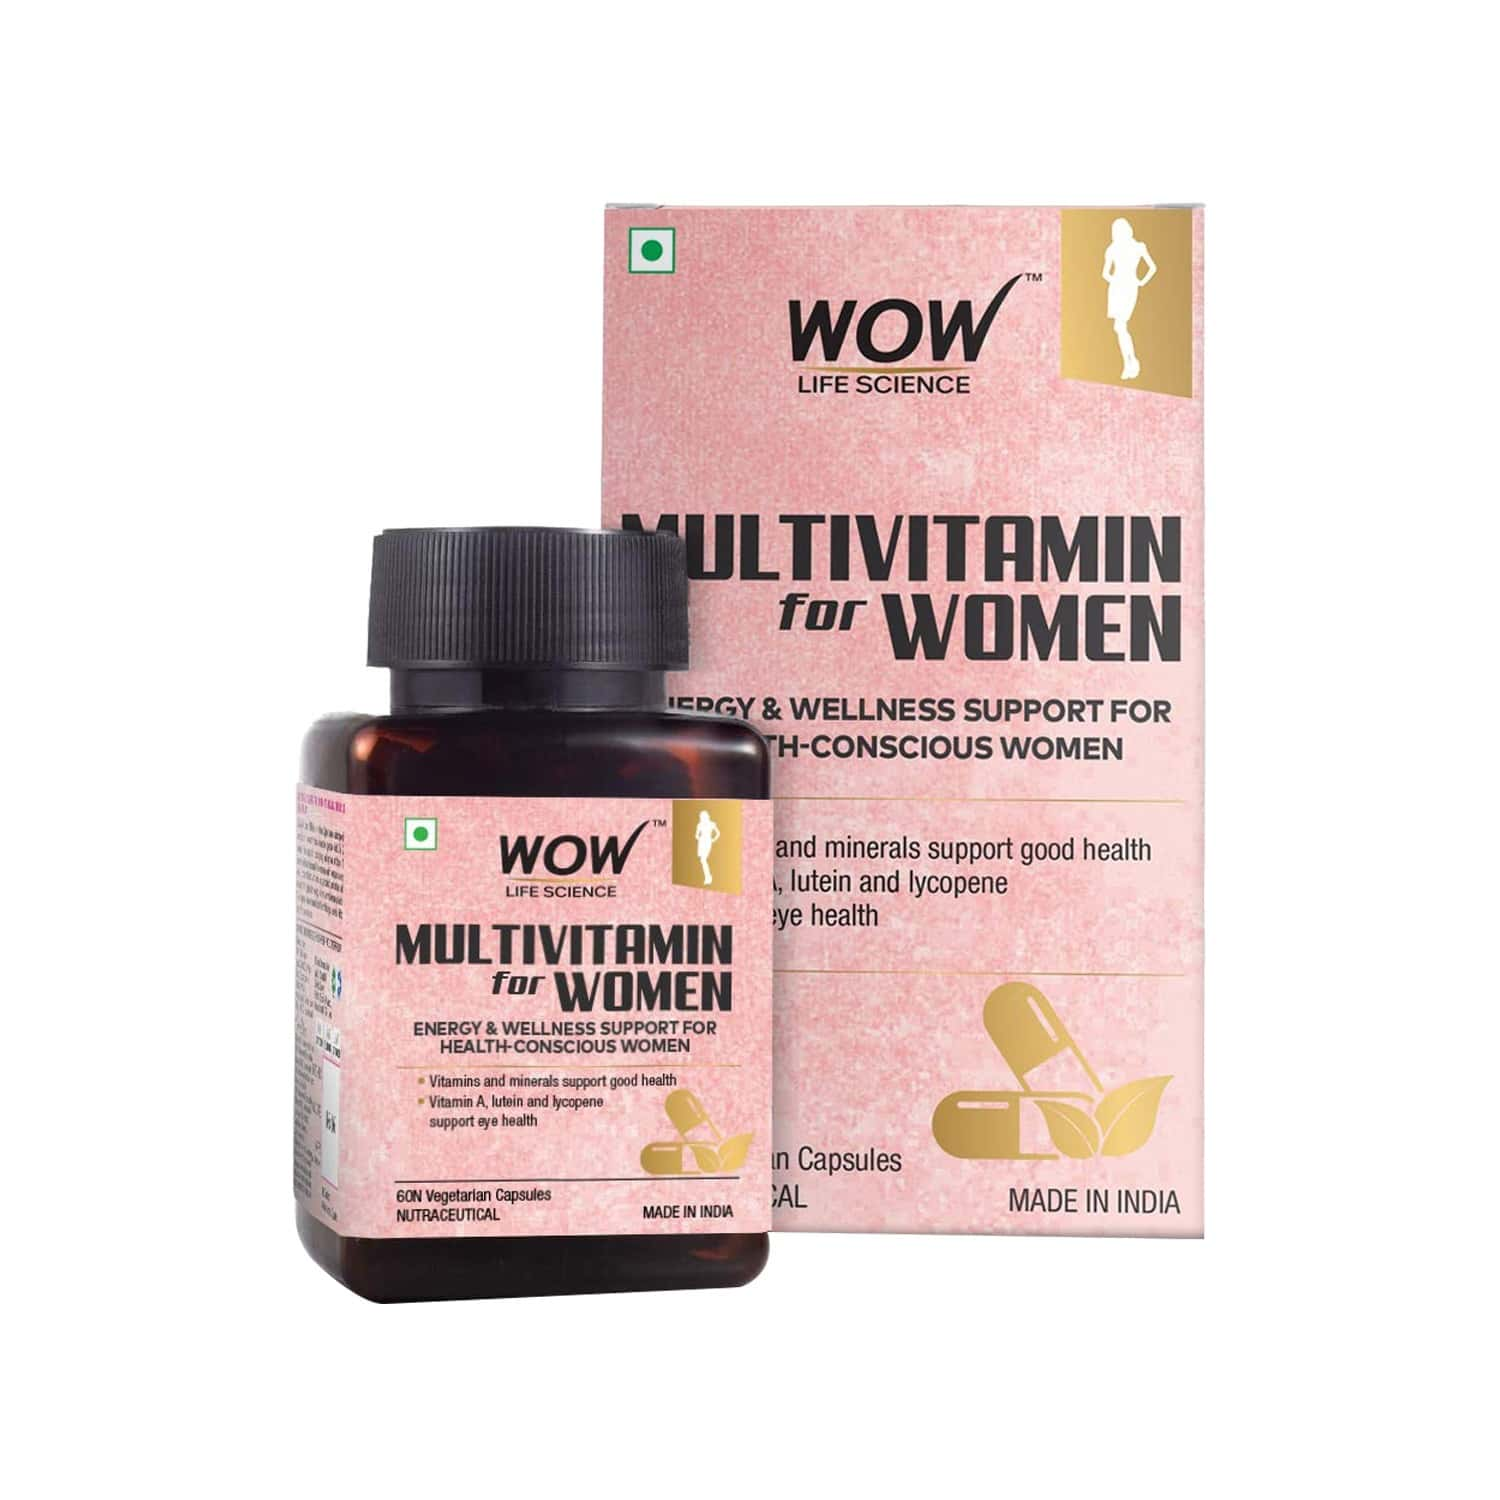 Wow Life Science Multivitamin For Women - 60 Veg Capsules